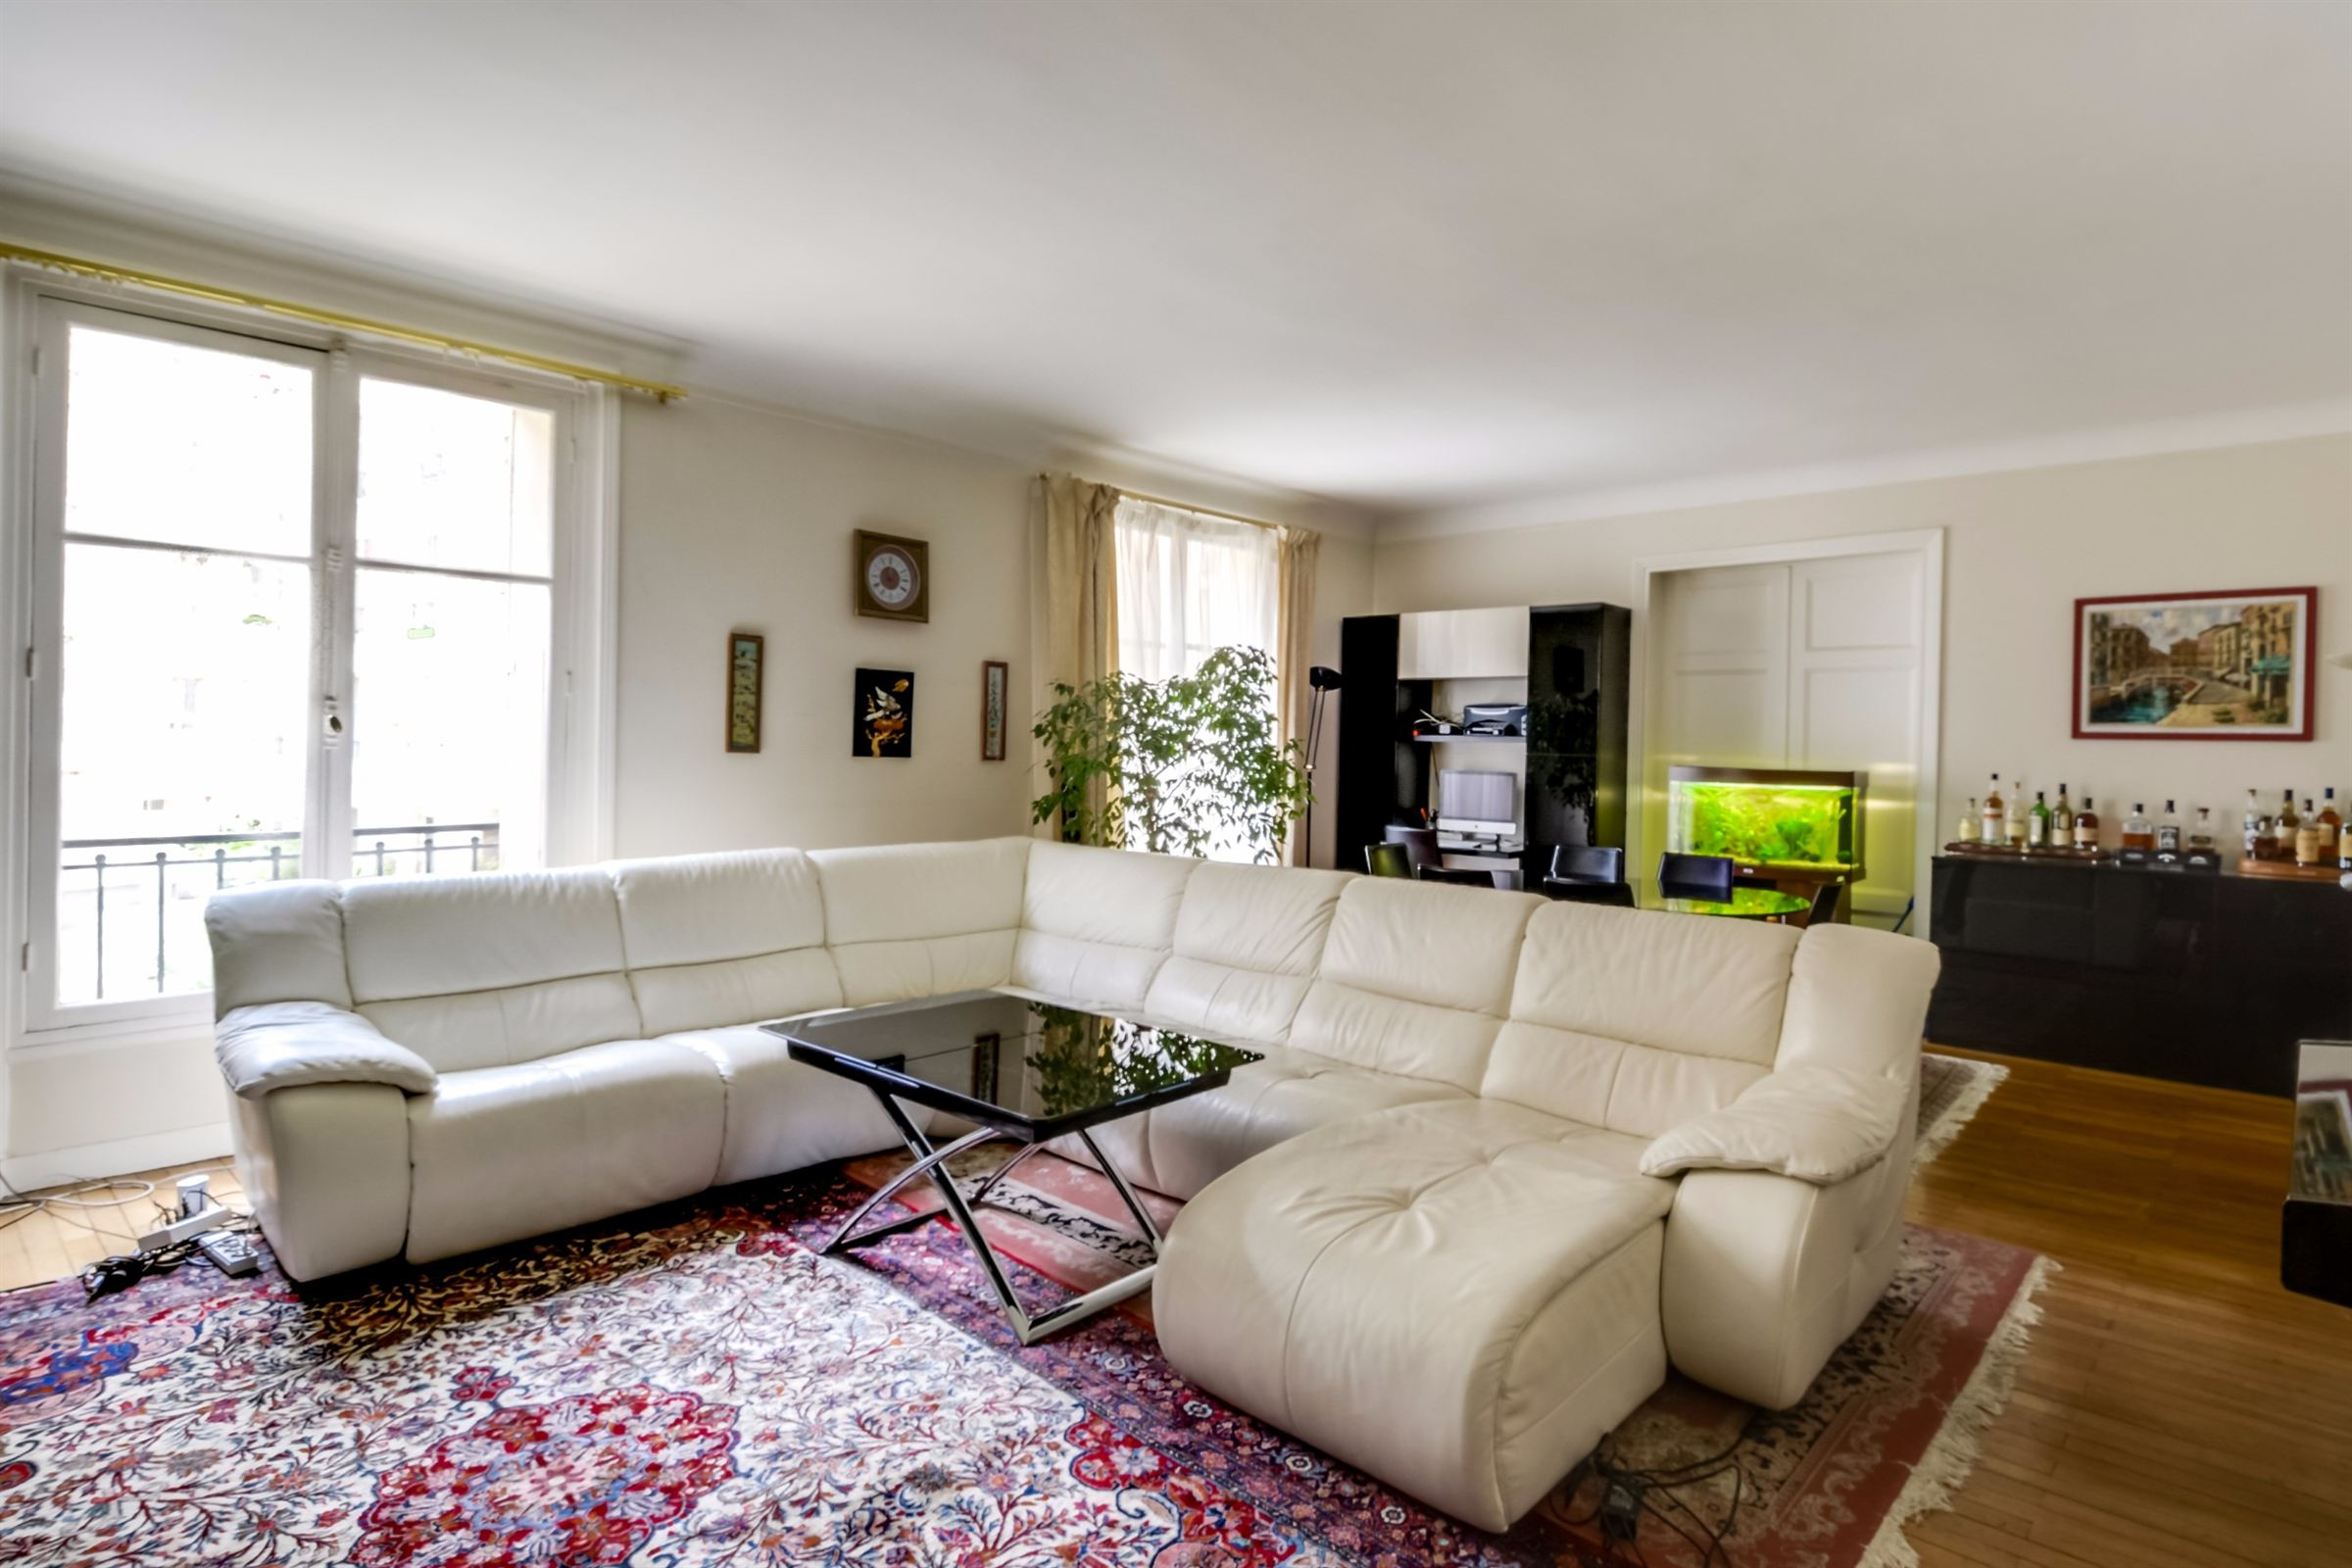 sales property at A 137 sq.m apartment for sale, Neuilly - Saint James, 5 bedrooms